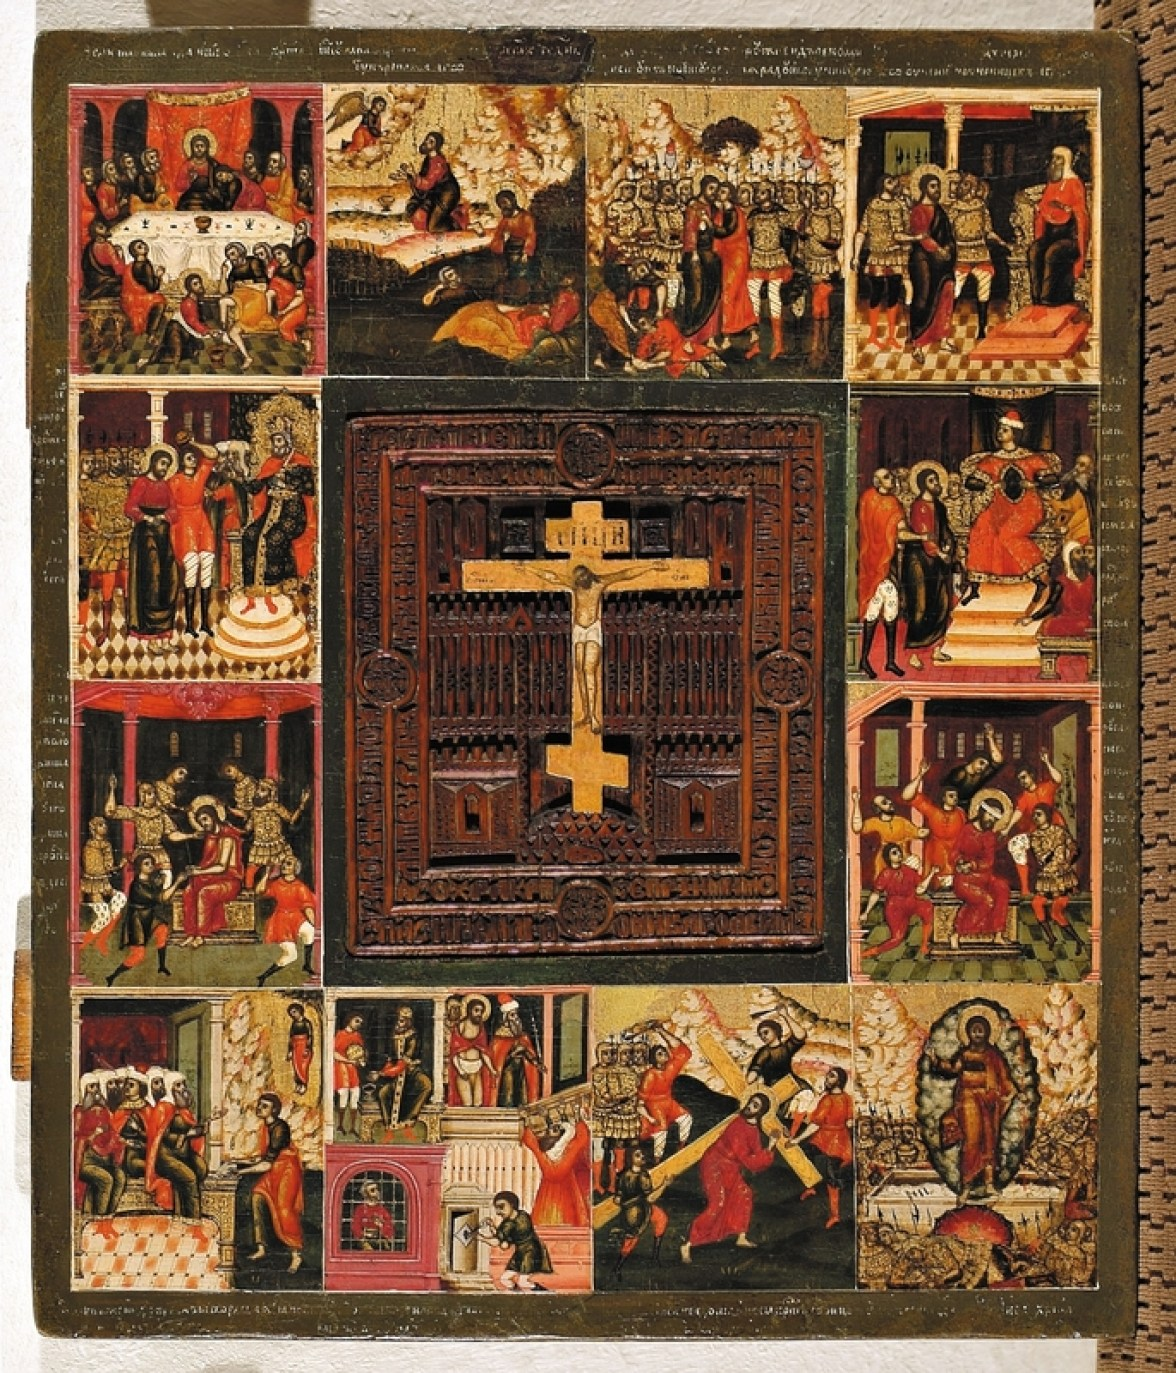 Crucifixion with 12 marginal scenes of the Passions of Christ, Late 17th century. Tempera on wooden panel. 36.5 x 32 cm. Yaroslavl Art Museum, Yaroslavl, Russia.